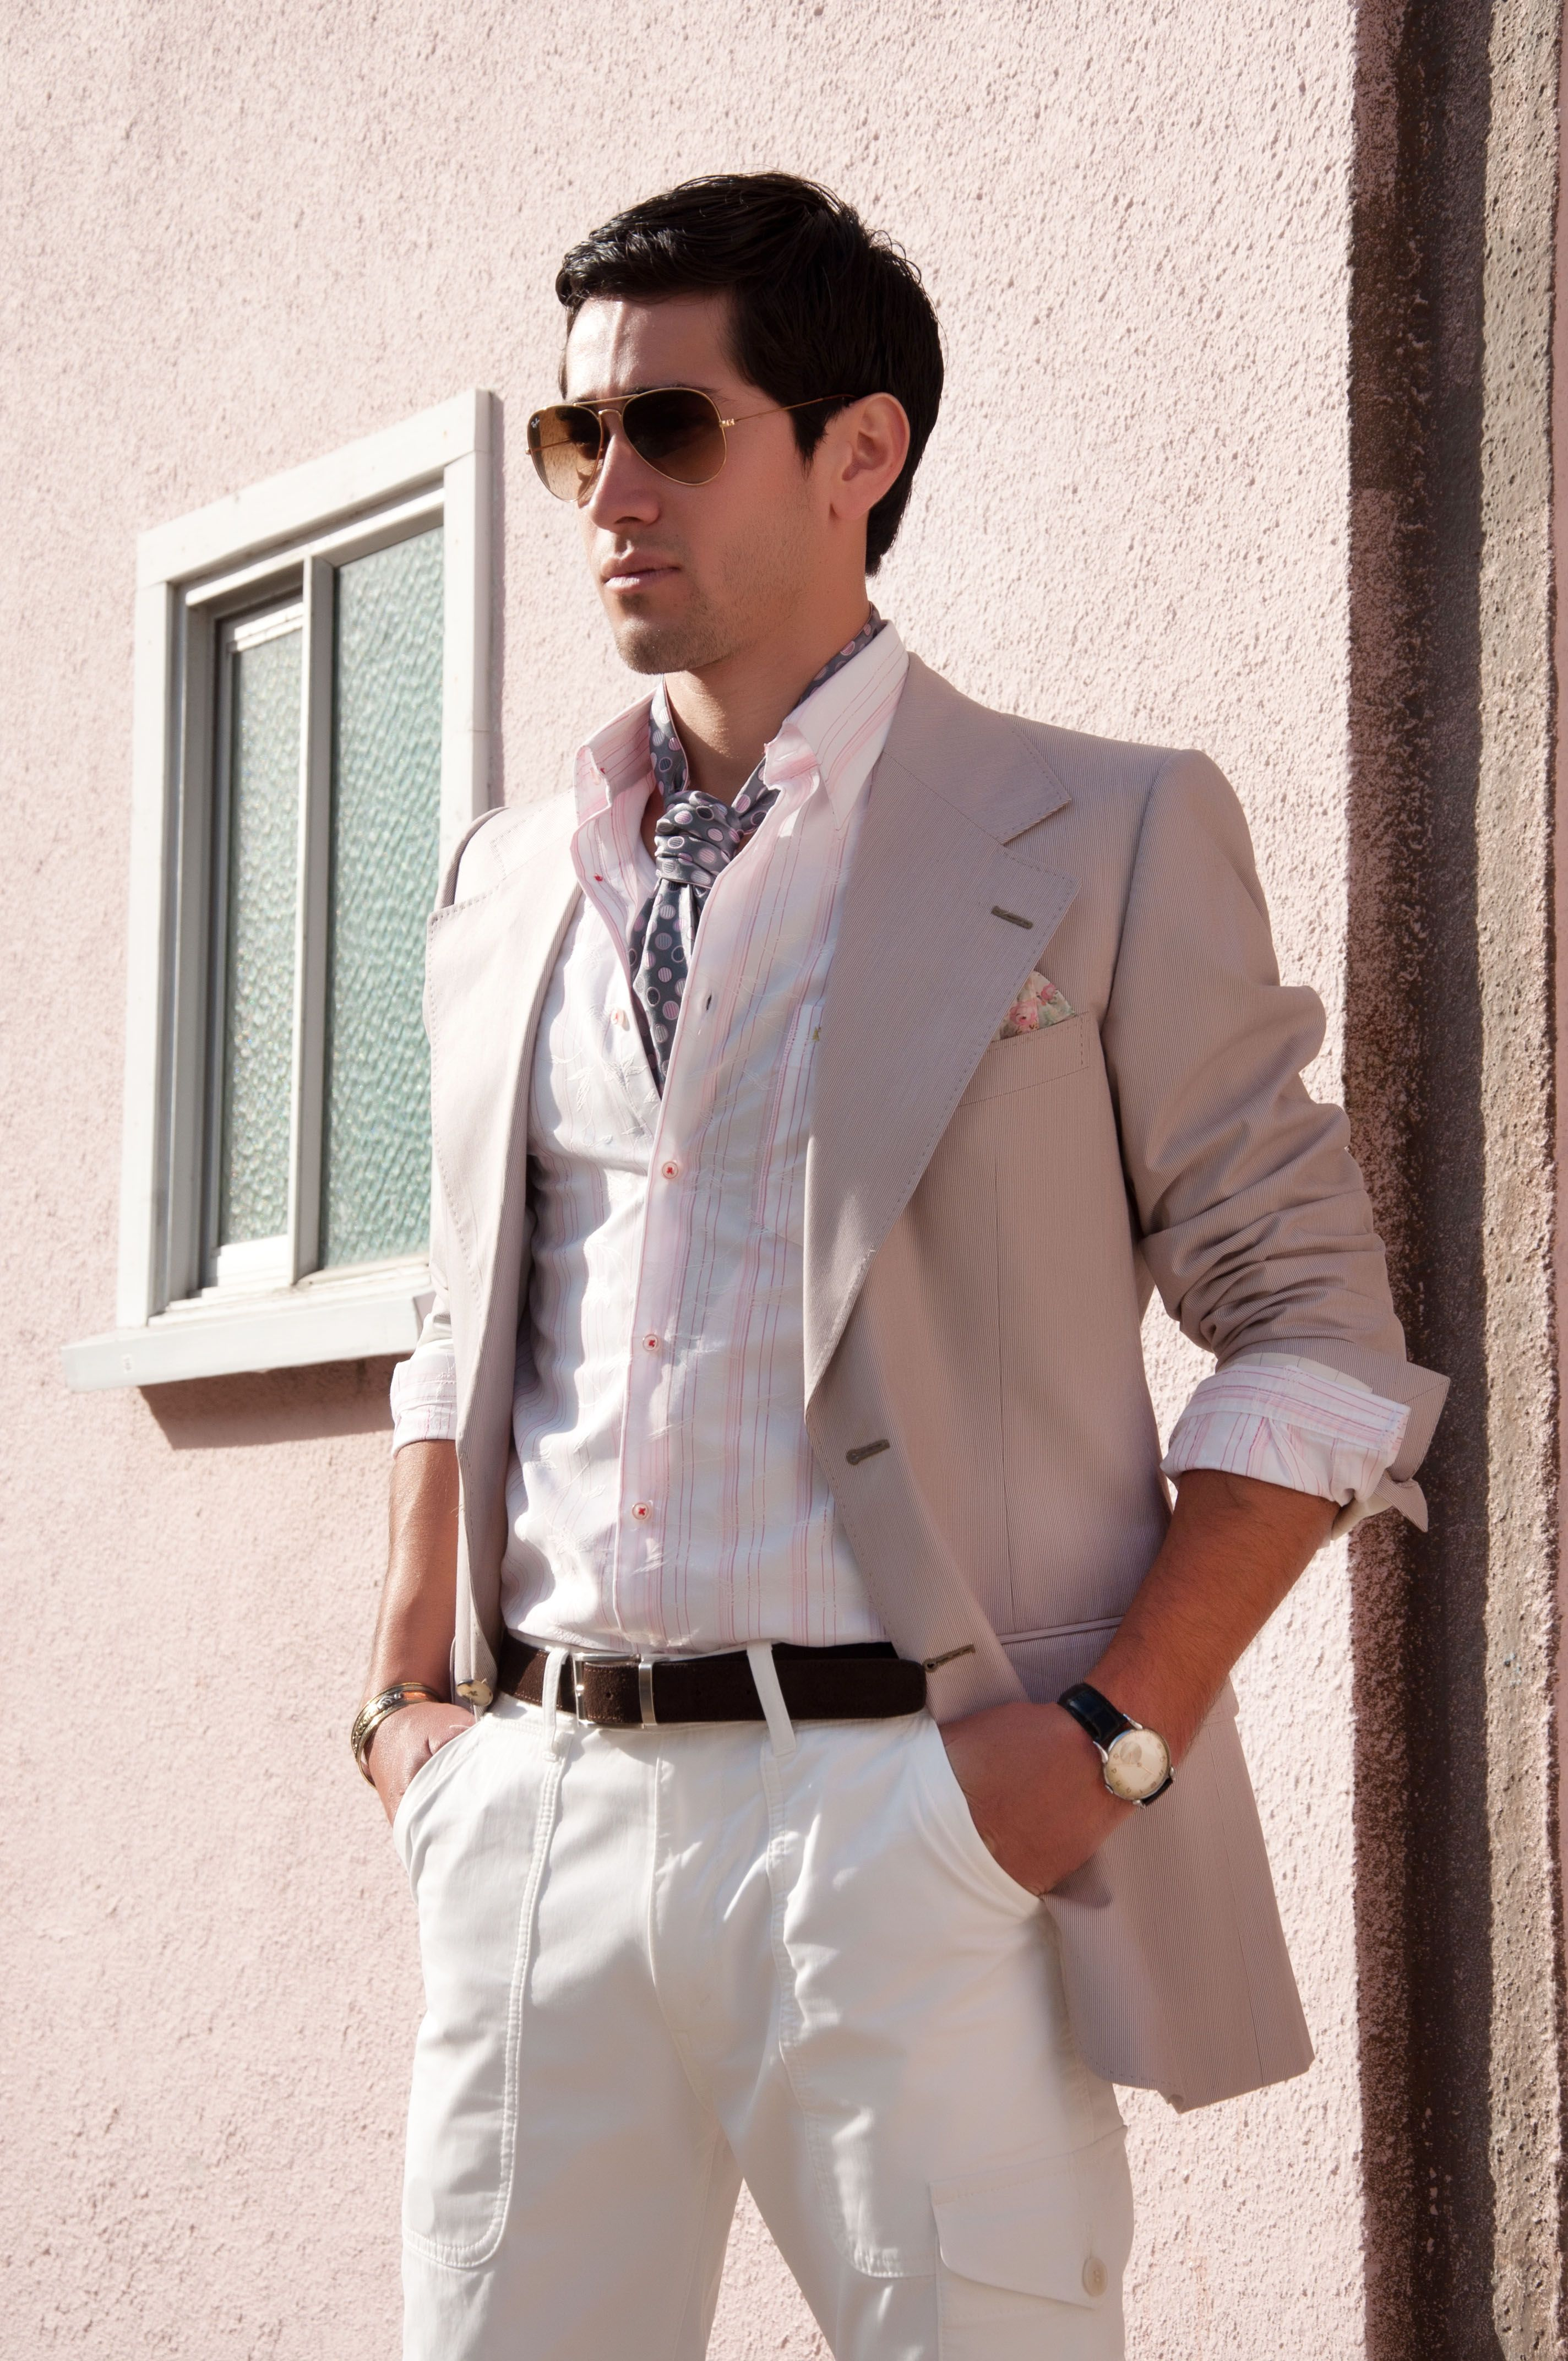 Great Summer Look Sporting The Ascot Tie Mens Fashion